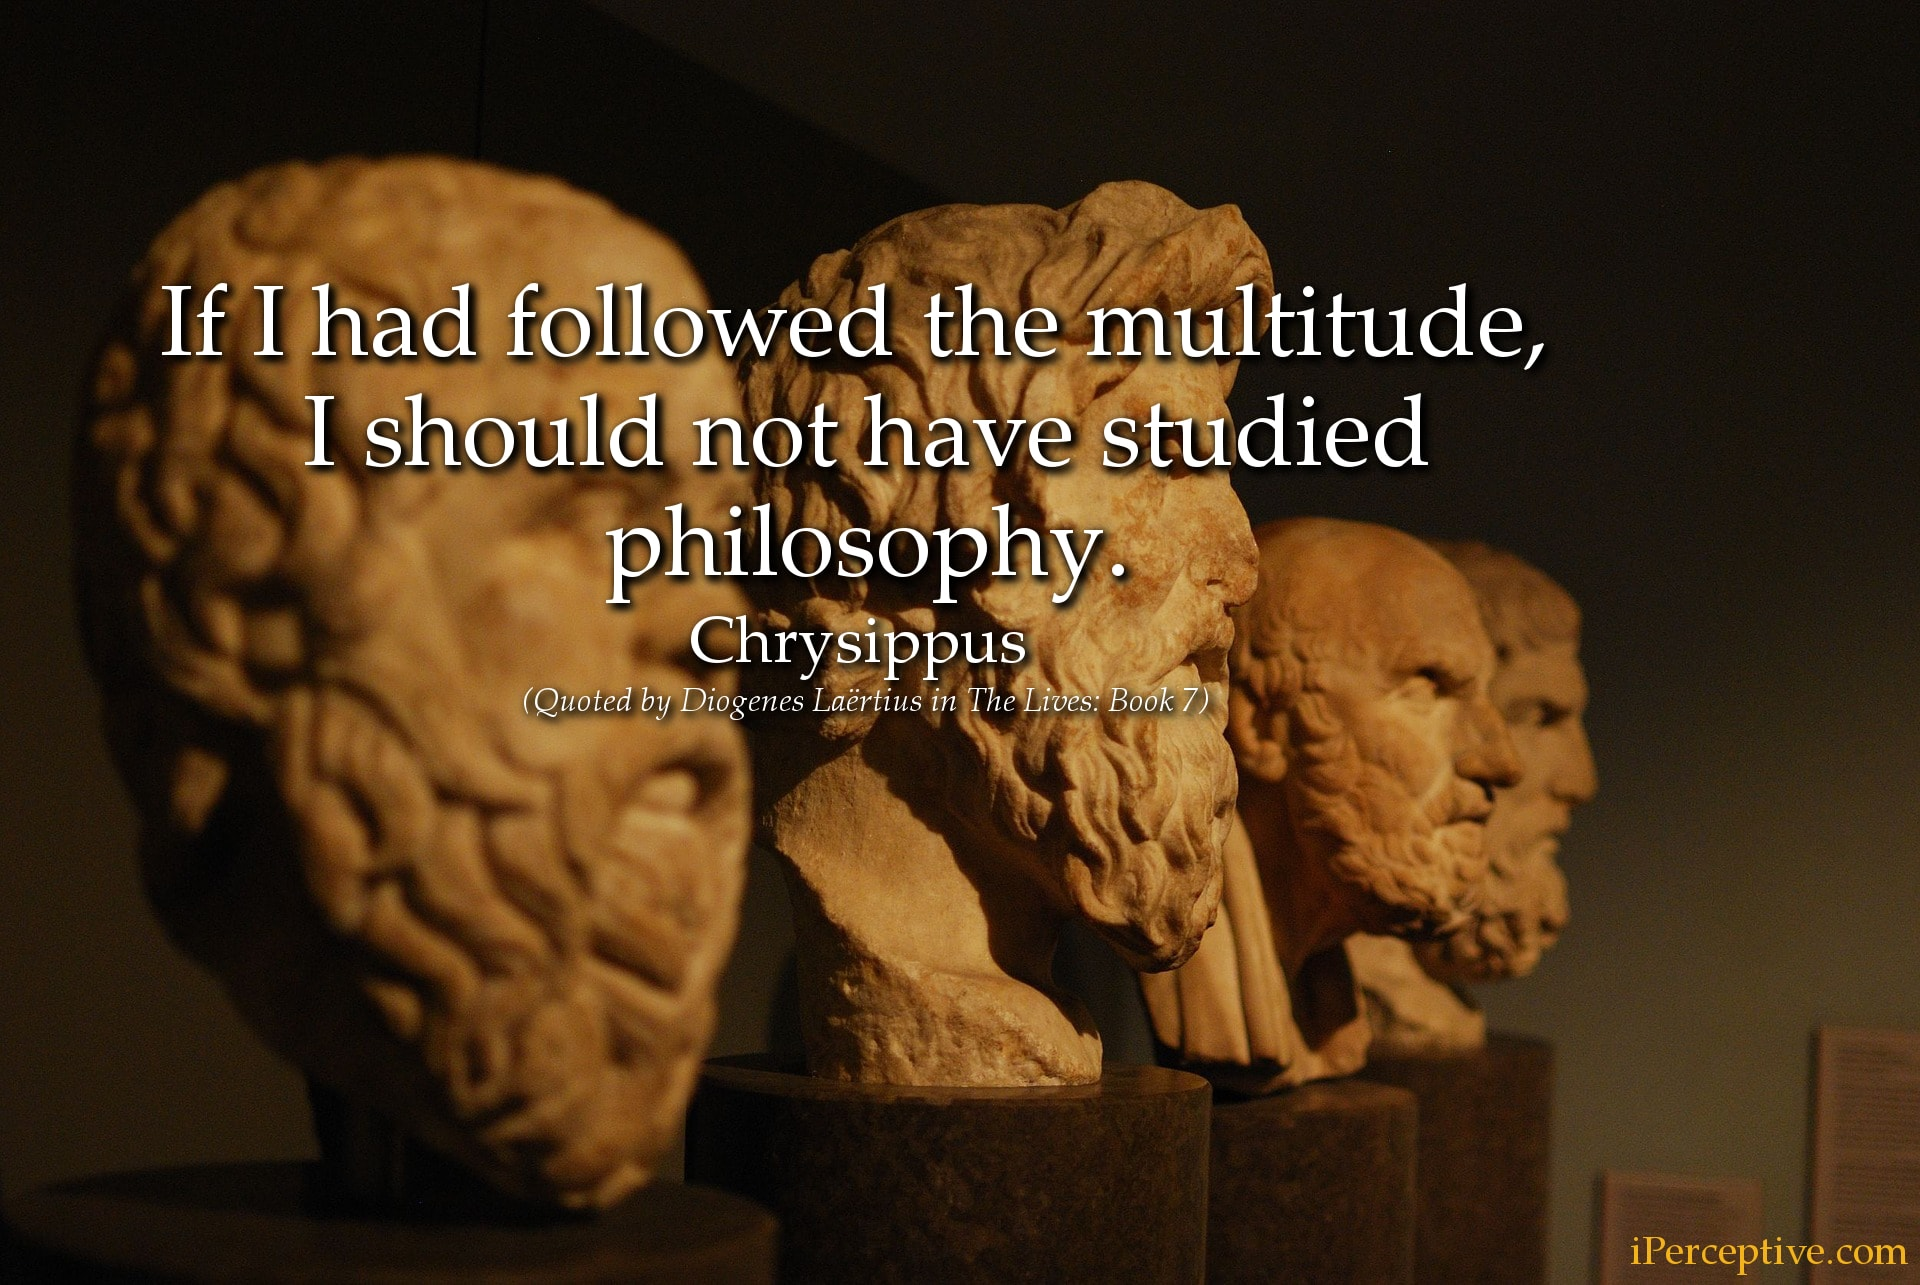 Chrysippus Stoic Quote:If I had followed the multitude, I should not have studied philosophy...